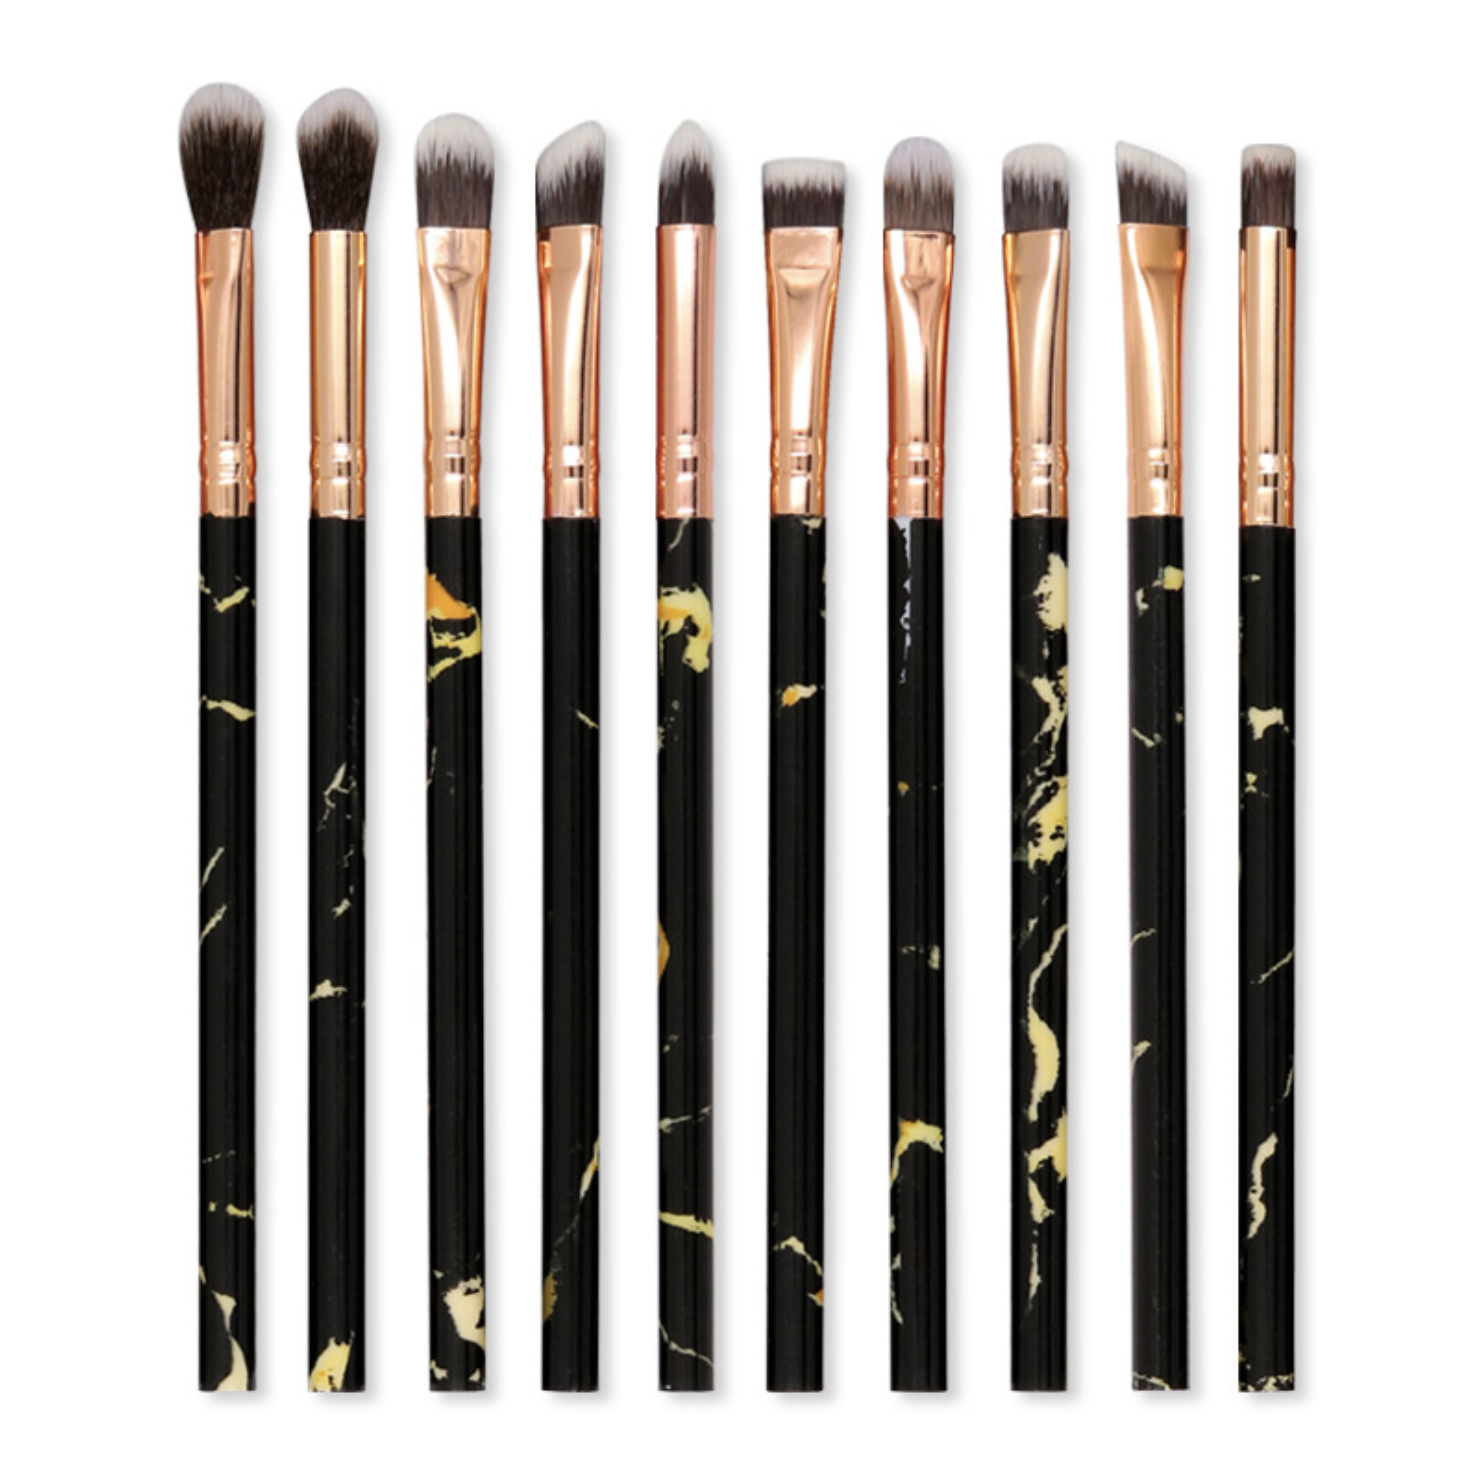 2020 new 10 pieces marble eye brushes eye shadow eyebrow beauty dressing tools make up free samples beauty products for Ladies